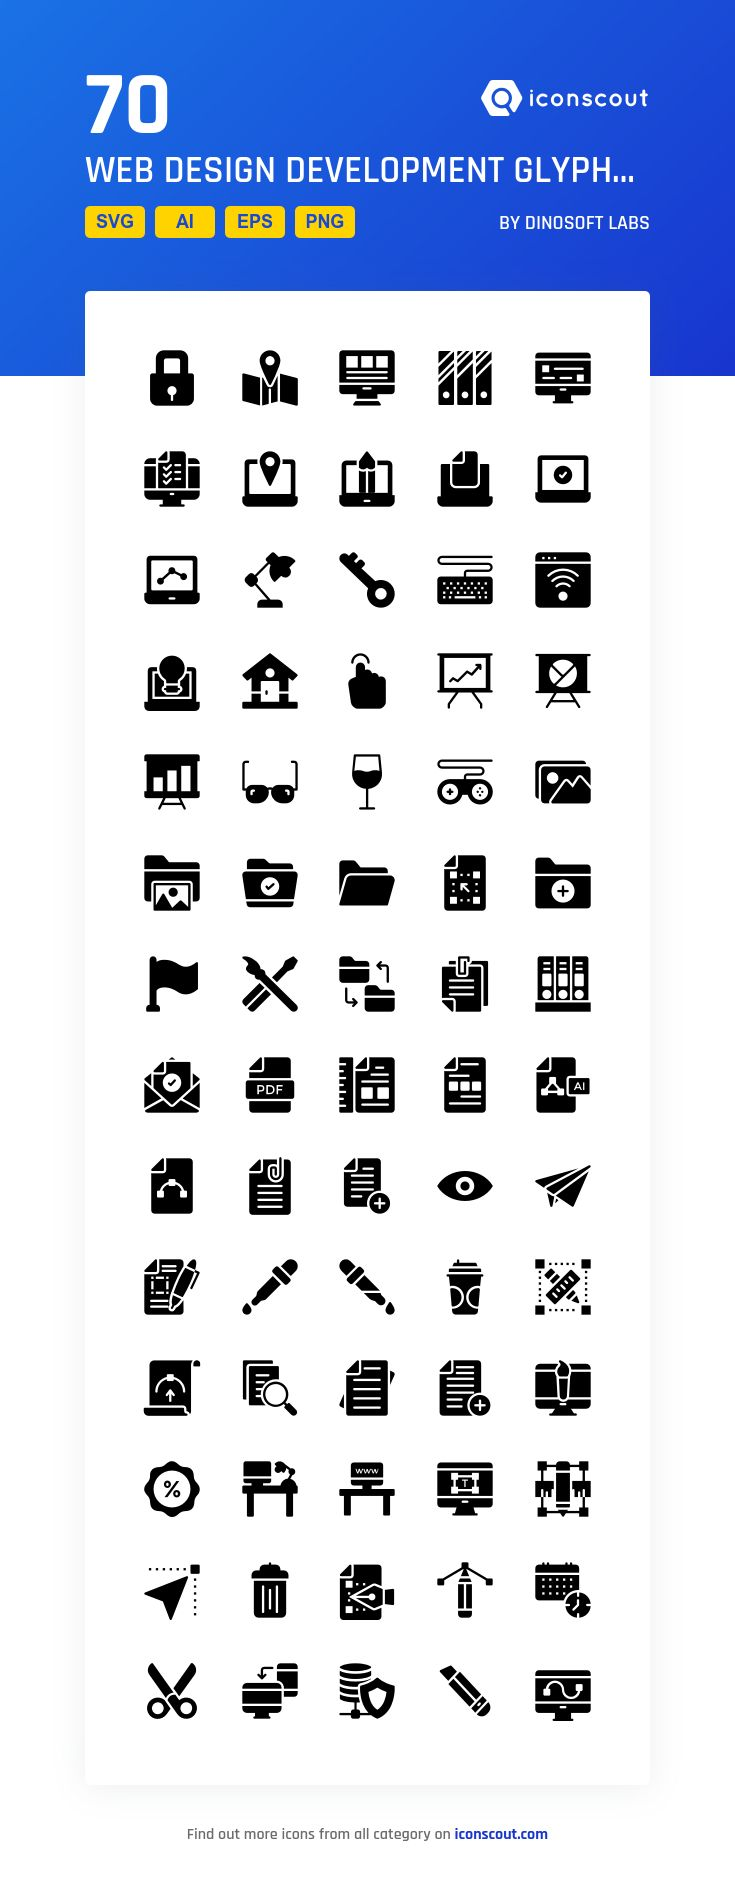 Web Design Development Glyphs Icons  Icon Pack - 70 Solid Icons